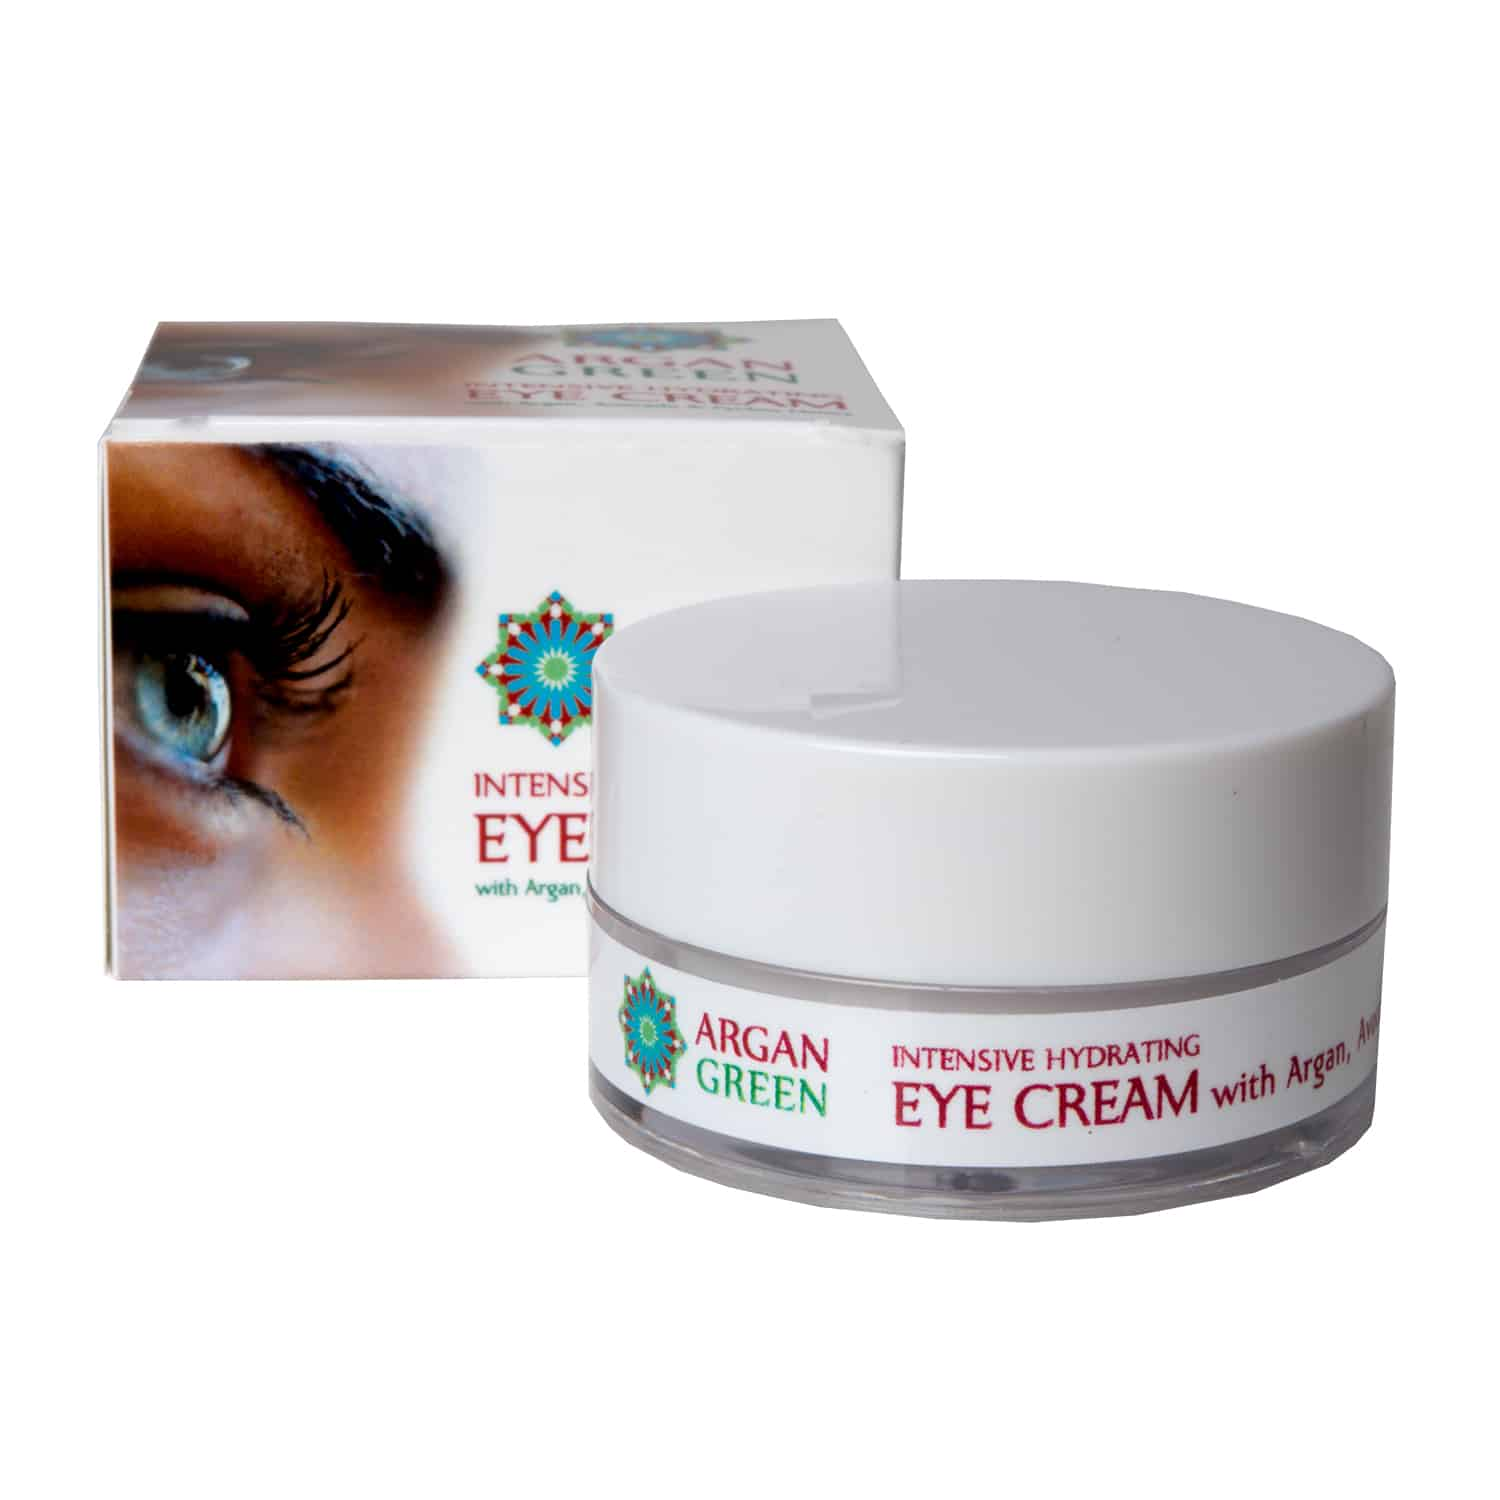 argan green eye cream